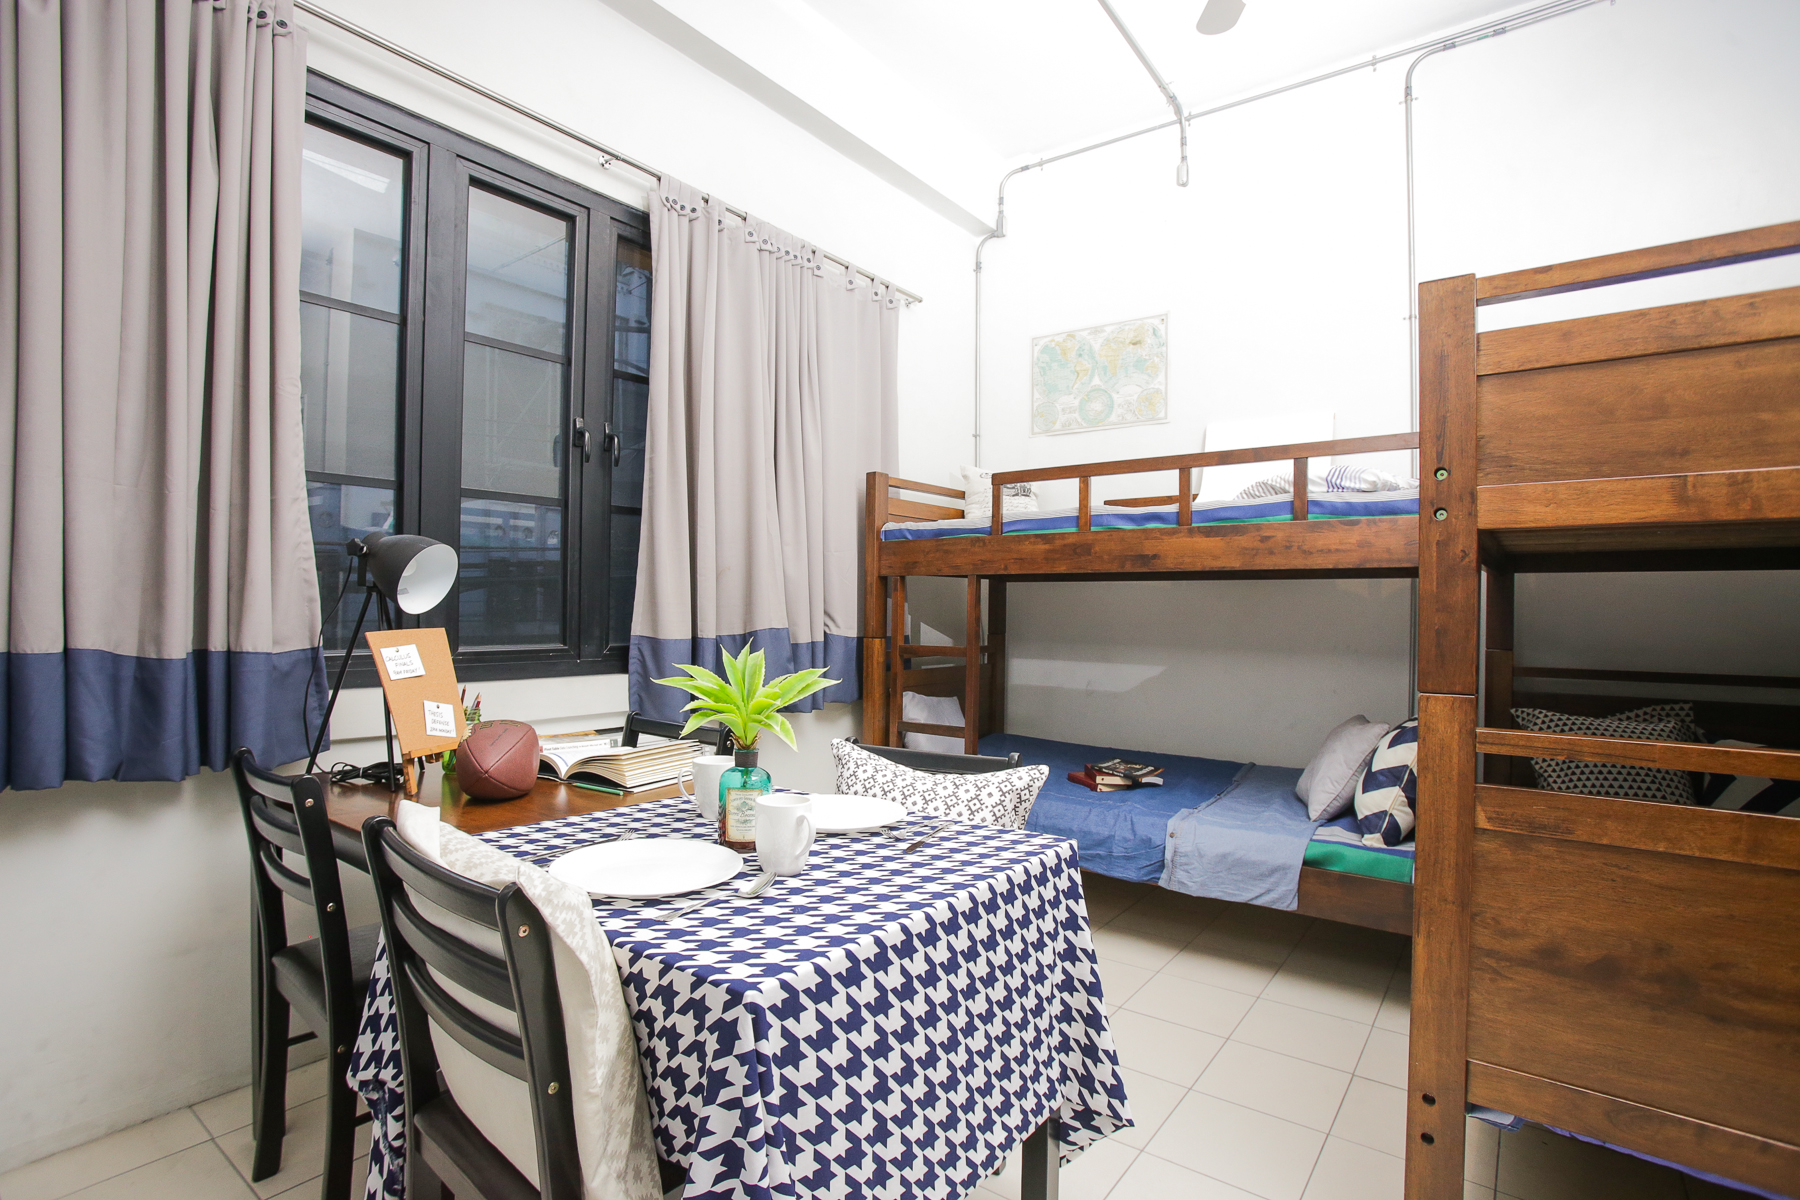 Rooms - Each semi-furnished dormitory room at Youniversity Suites has a bunk bed, kitchen with granite countertop, and private toilet & bath!There are rooms for one, two and for four! All rates range from P 10,000 and below per person depending on what you're getting and how long you'll be staying.